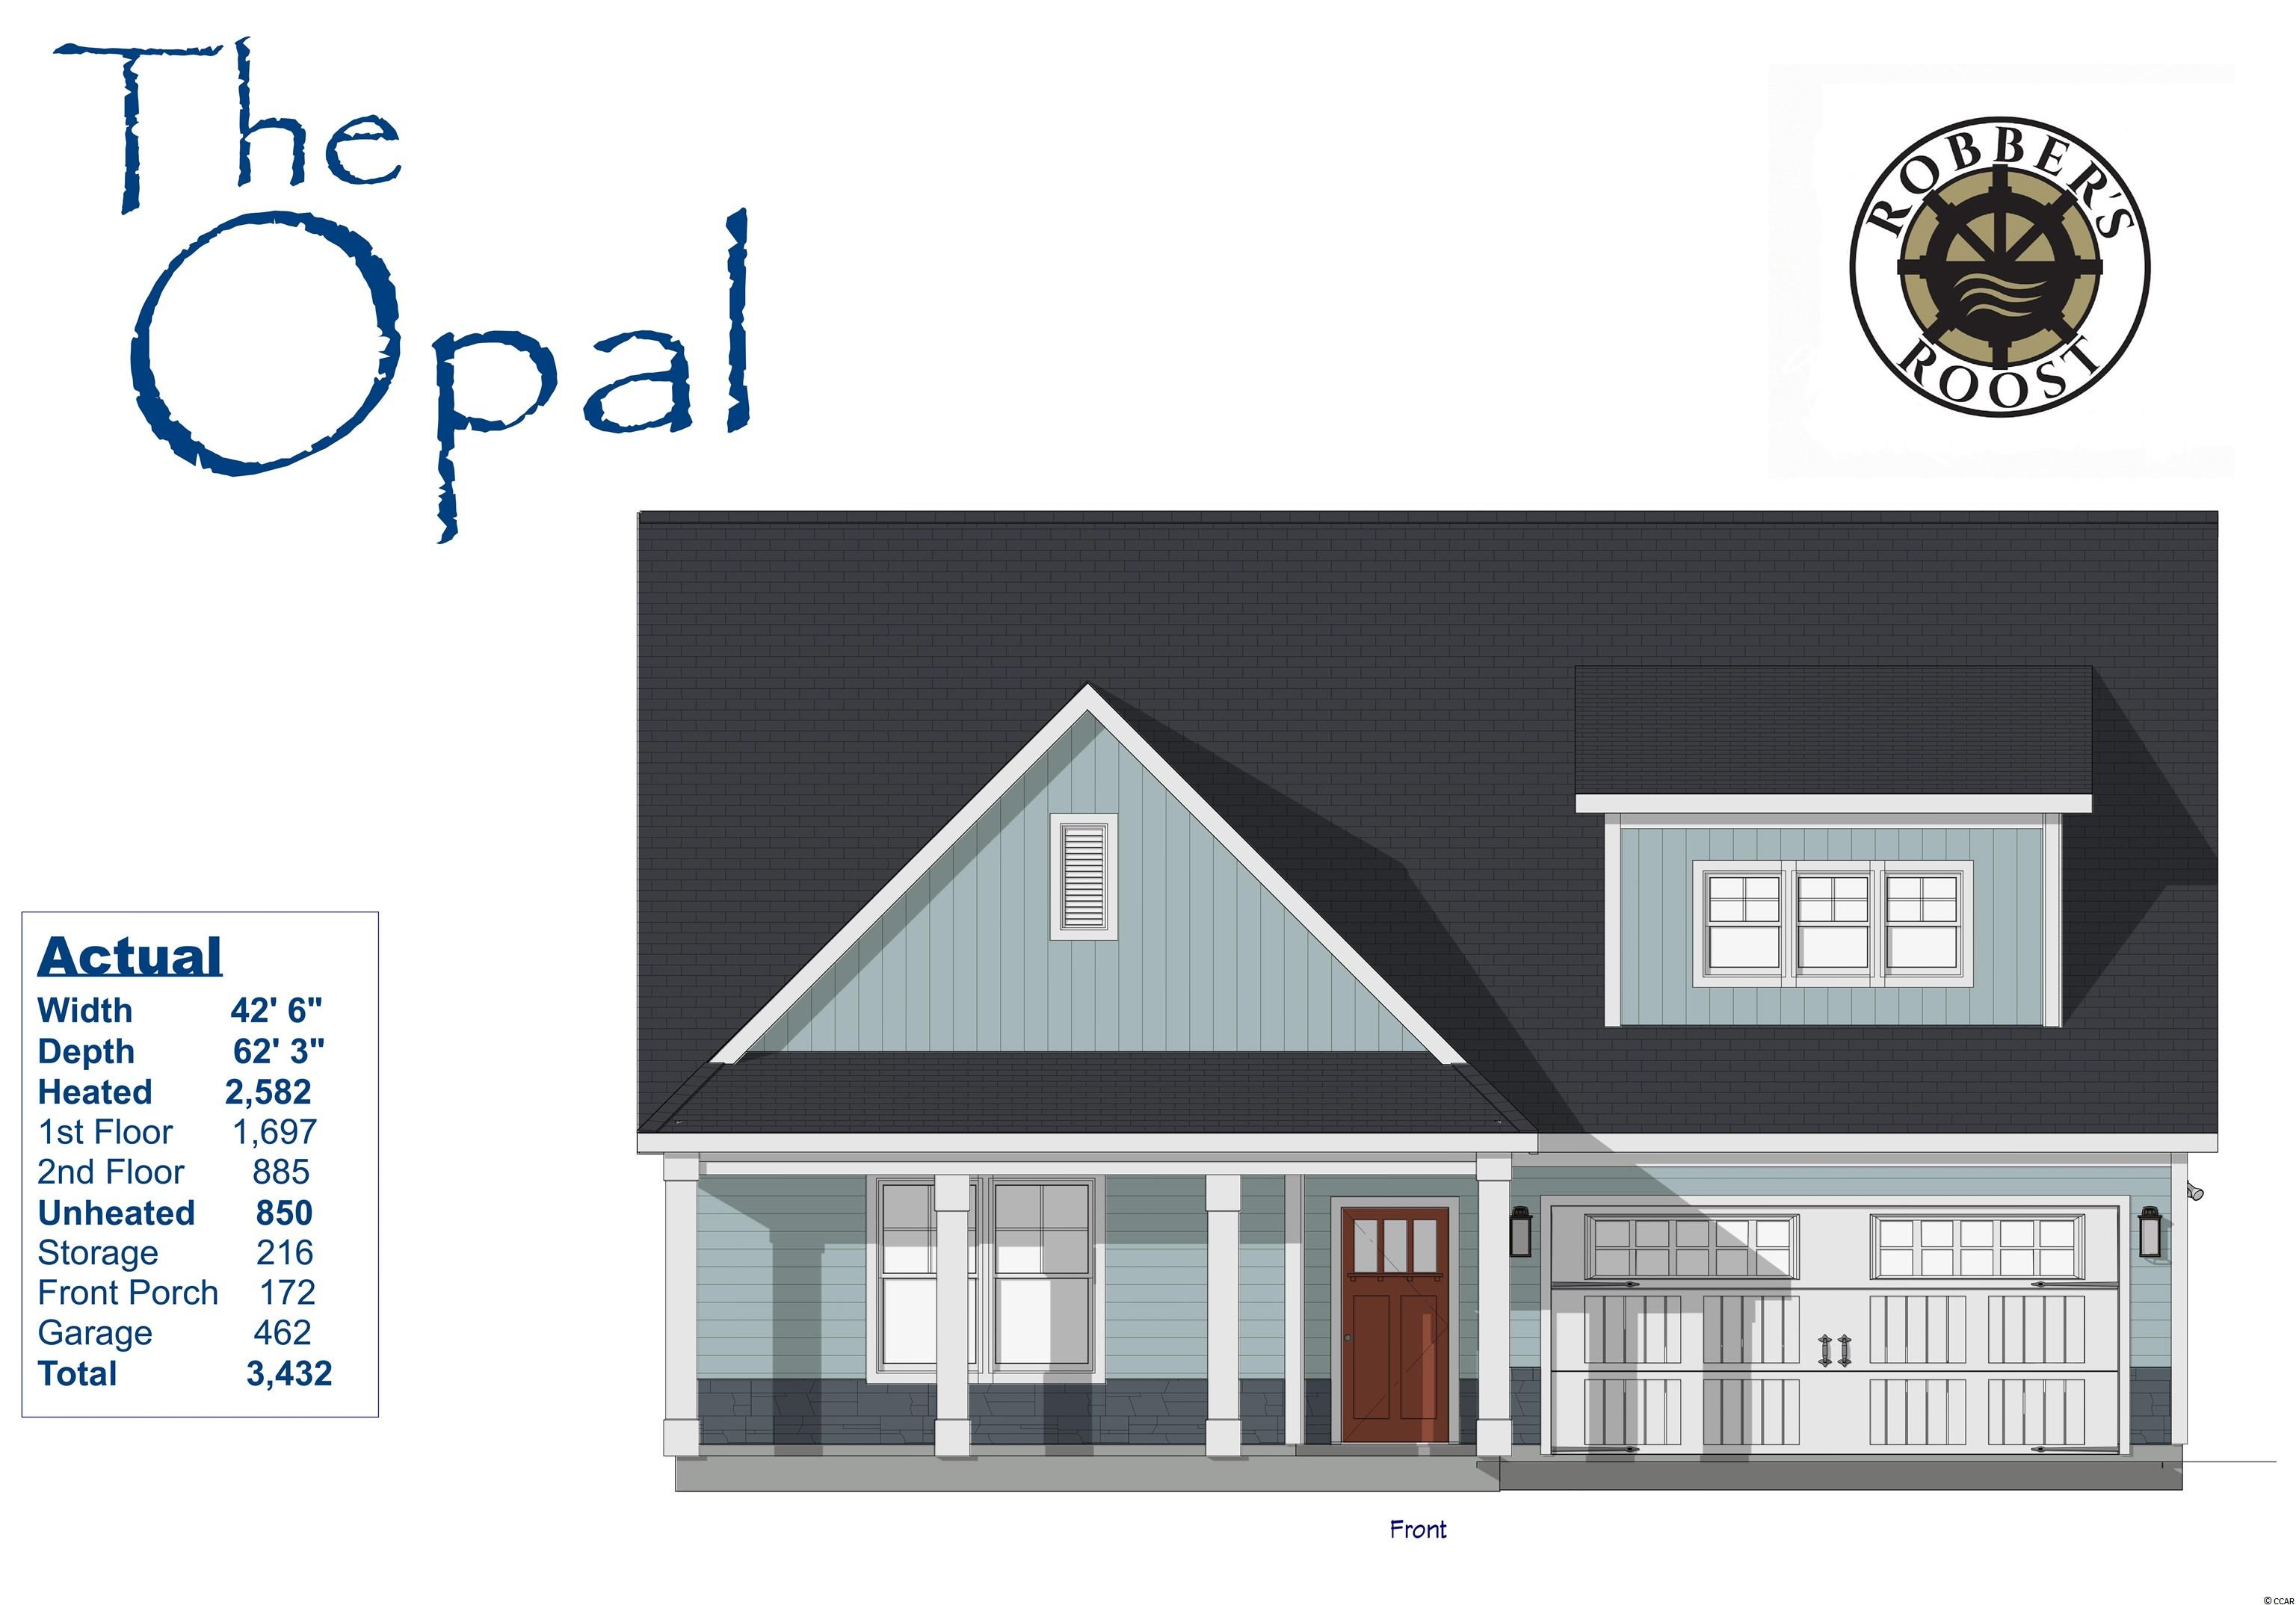 Our Jade III Model has so much to offer ~ 4 Br/3ba 2-story home with 2 car garage. The first floor boasts a huge living room,  kitchen with free standing gas convection range, over-the-range sensor microwave, energy star dishwasher, granite countertops, garbage disposal, pantry & large dining area. Fantastic Master Suite with a large walk in closet & bathroom with walk-in shower and double sinks as well as 2 other bedrooms, a full bath and a laundry room.  Second floor has a large bedroom, a playroom, a full bath & storage space. Energy savings features include Low E windows, 14 Sear HVAC, Digital WiFi Programmable Thermostats, Tankless Gas Hot Water Heater & 200 Amp electrical service, security system with keyless entry.  Too much to mention so come see for yourself! From the time you step onto the quaint from porch & open the front door you'll see the quality of construction. 9' flat ceilings, wide plank restoration flooring, luxurious carpet in bedrooms, vaulted/tray ceilings & a wonderful open floor plan.  Additionally, Robber's Roost at North Myrtle Beach is a natural gas community east of Hwy 17 with a community pool coming for the 2020 swimming season & is located within walking, bicycle or golf cart distance to Tilghman Beach, the beautiful Atlantic Ocean w/ 60 miles of white sandy beaches and is close to Coastal North Town Center (shopping, dining, beauty, pets), Shag dance capital Main St., golf, boating/fishing in the ICW, entertainment and all the amenities of living in Coastal South Carolina. Whether a primary residence or your vacation get-a-way, Don't Miss ~ come live the dream!  (*Many new lots/plans to choose from!)